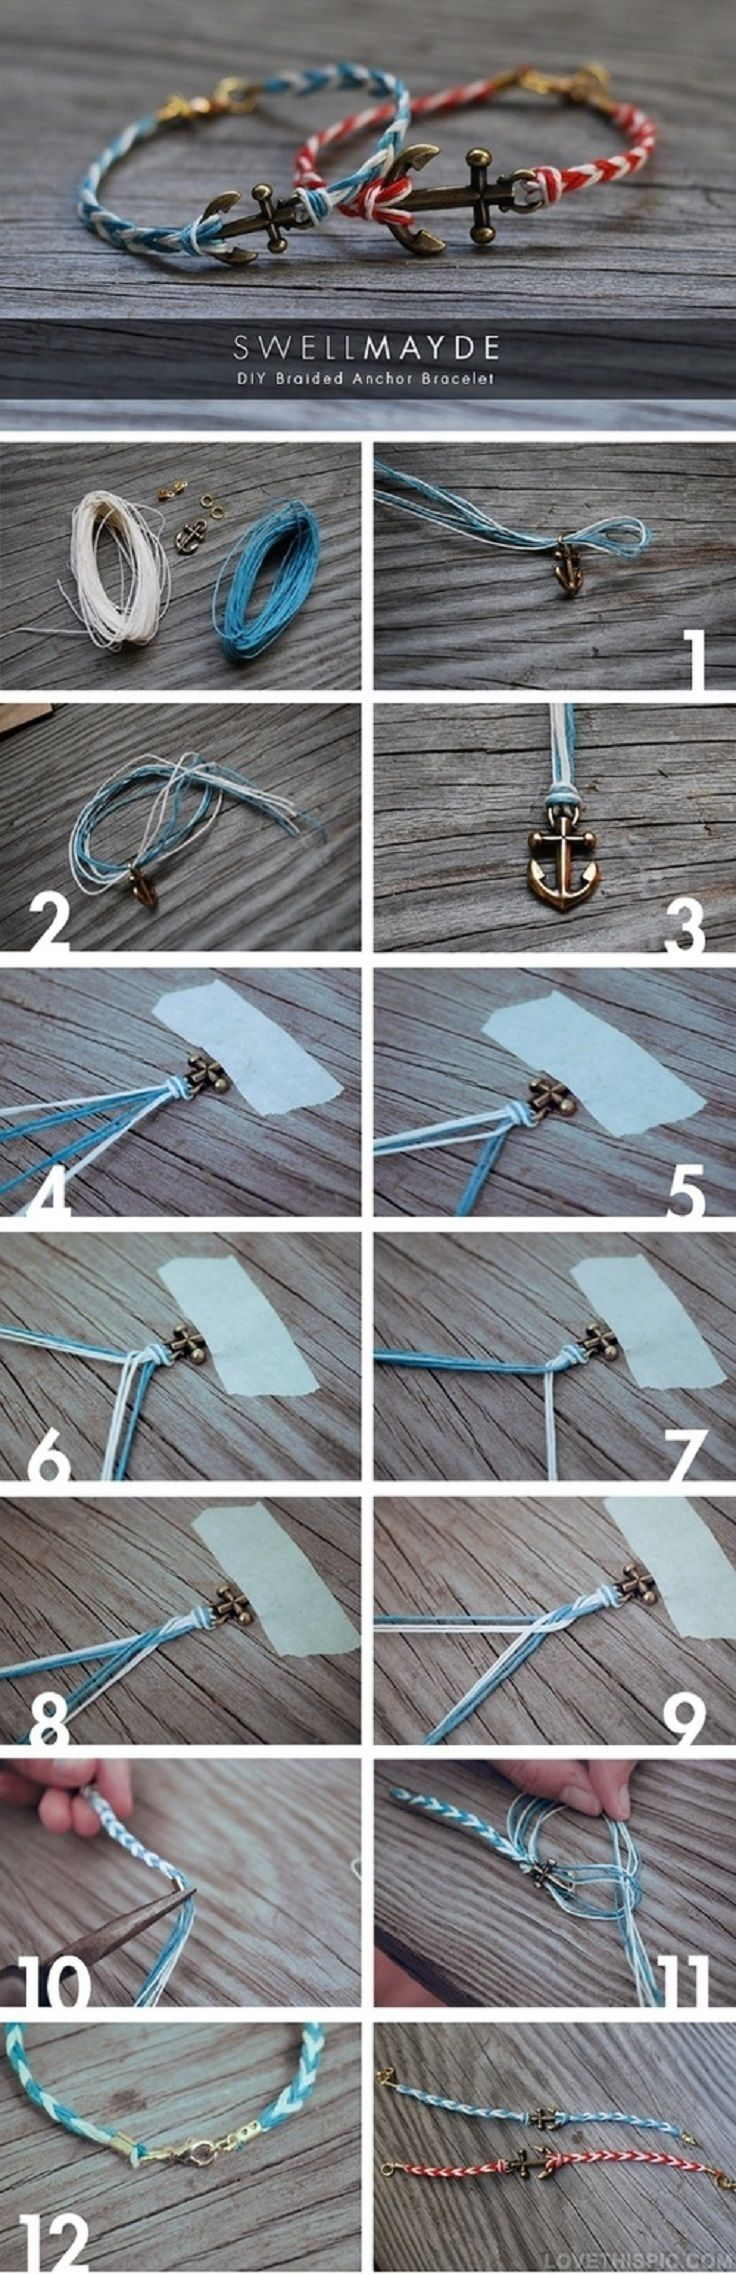 22228-Diy-Braided-Anchor-Bracelet.jpg 736×2,275ピクセル